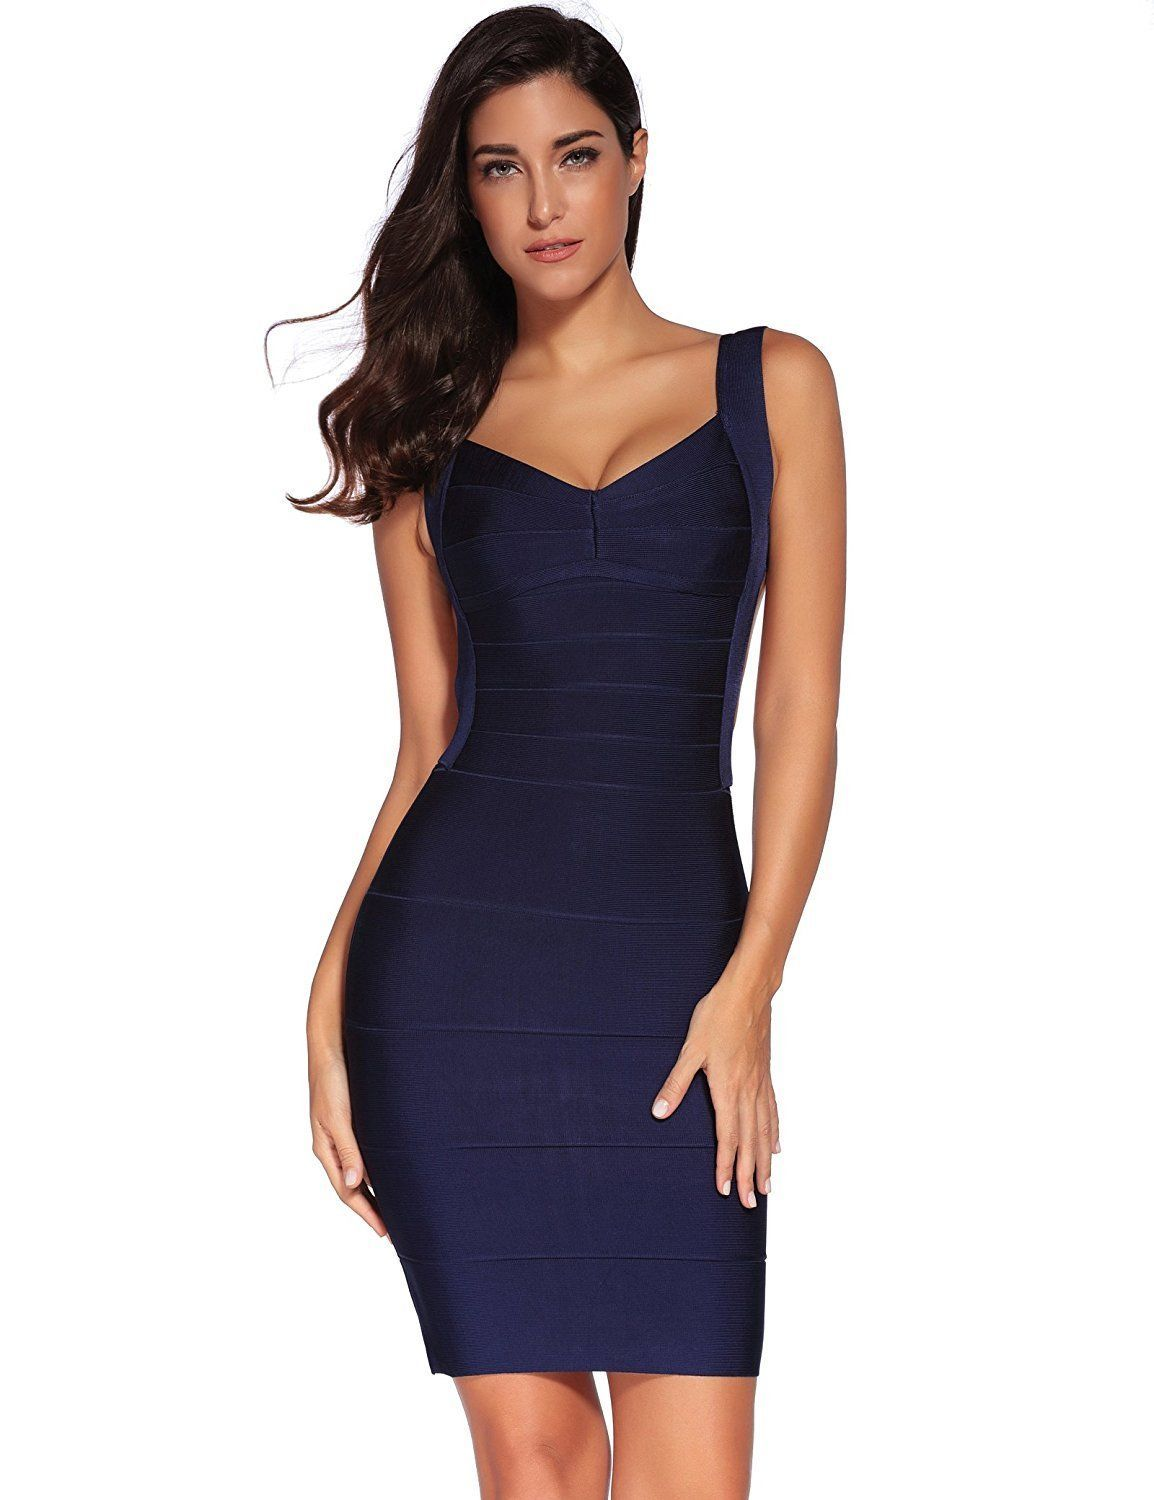 90f5b35b2dd Awesome Amazing Meilun Women s Bandage Dress Backless Stripe Sleeveless  Bodycon Party Dresses 2017 2018 Check